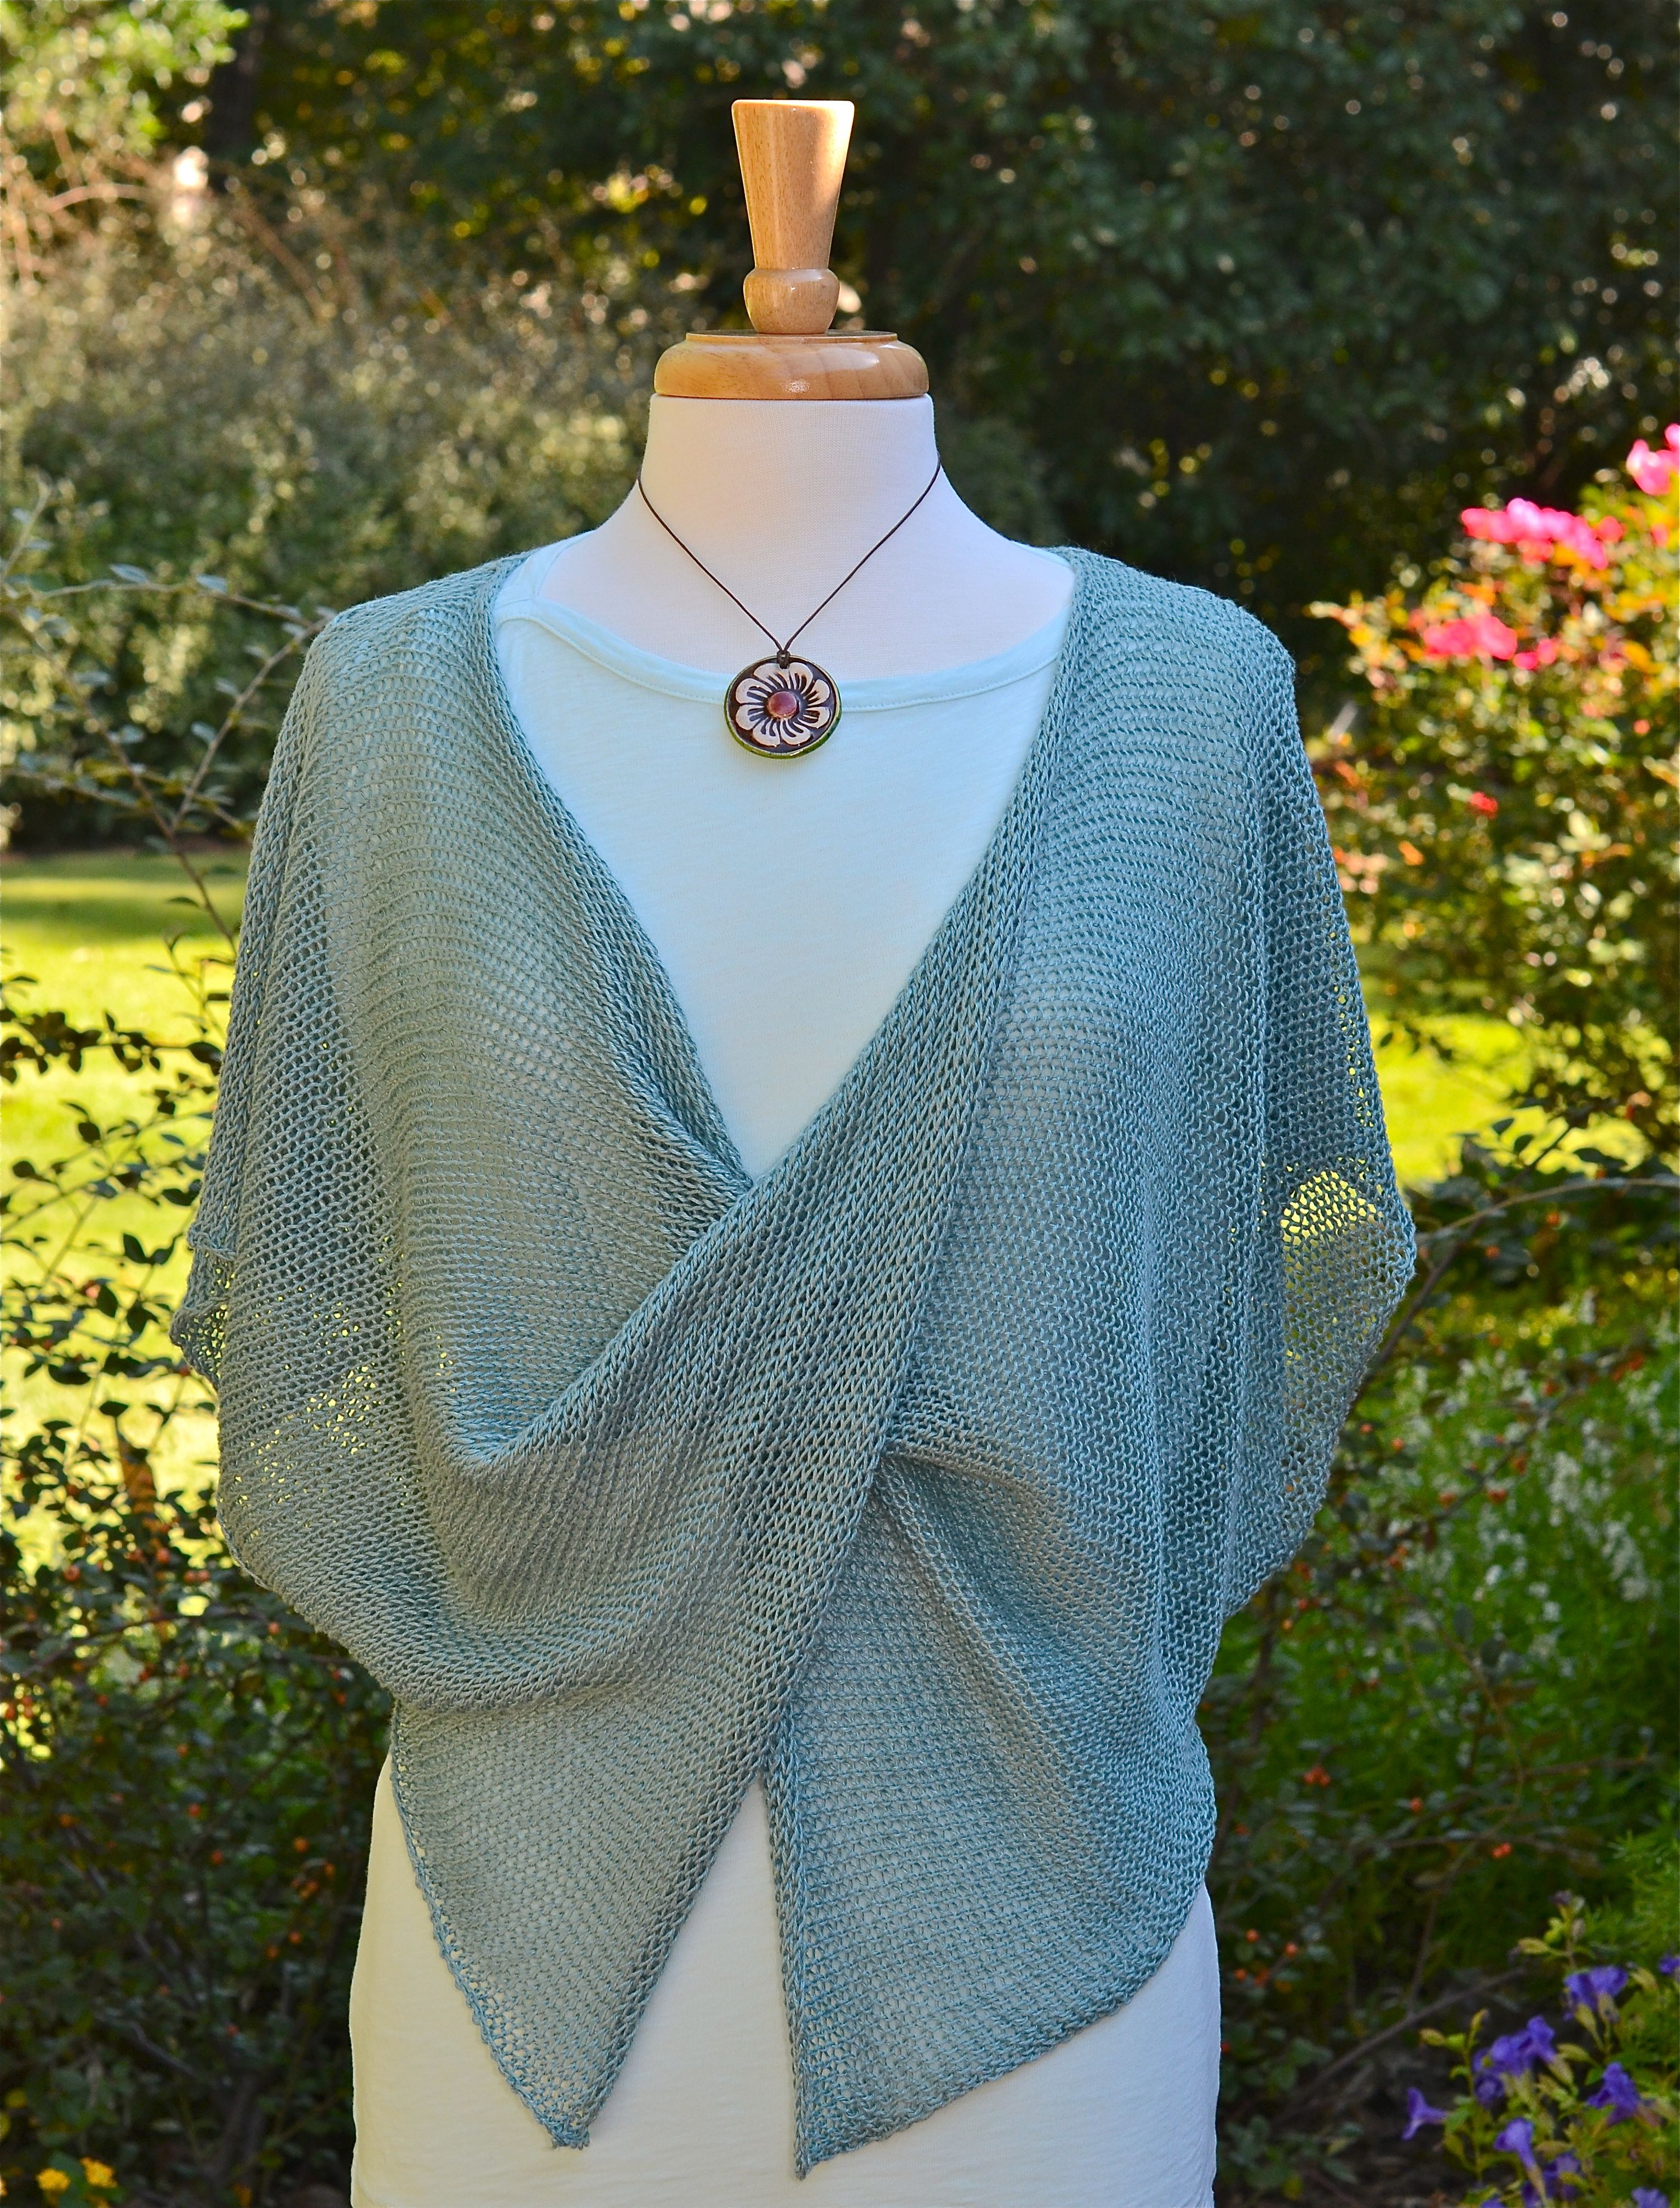 Twisted: a knitting pattern | Knitting designs by SKNITSB ...